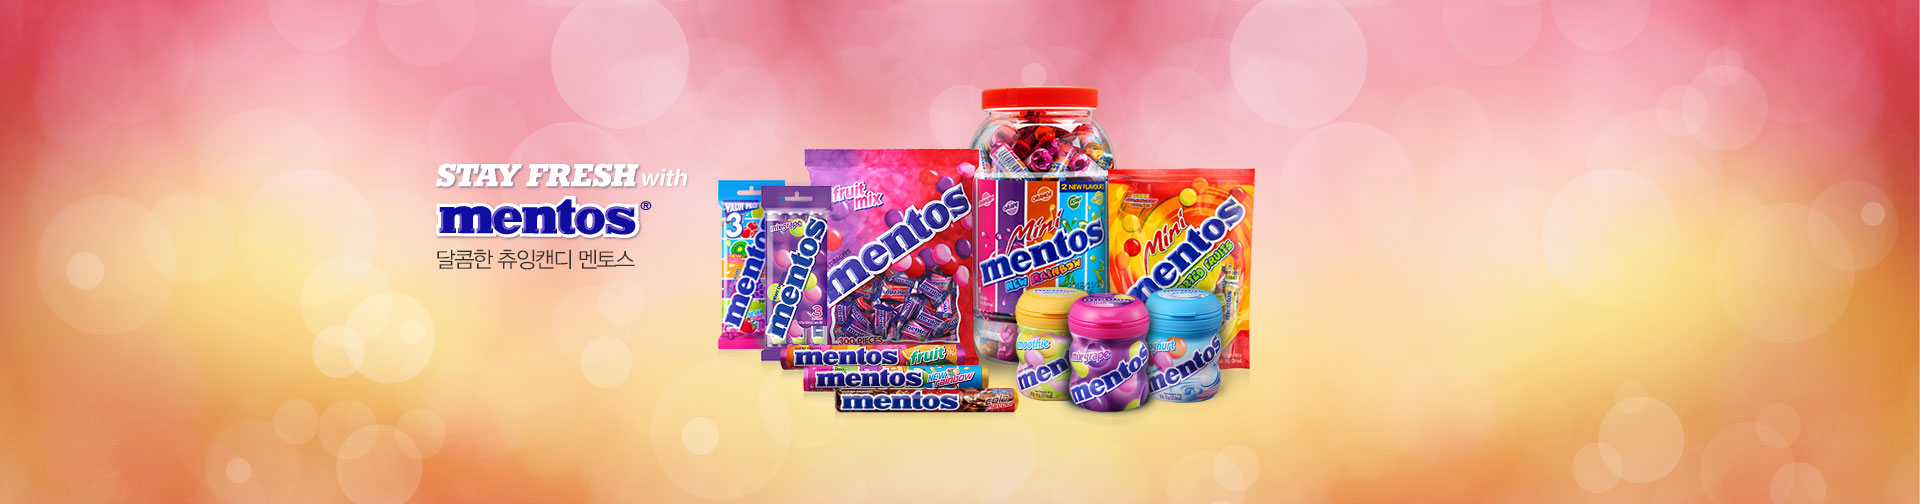 STAY FRESH with MENTOS